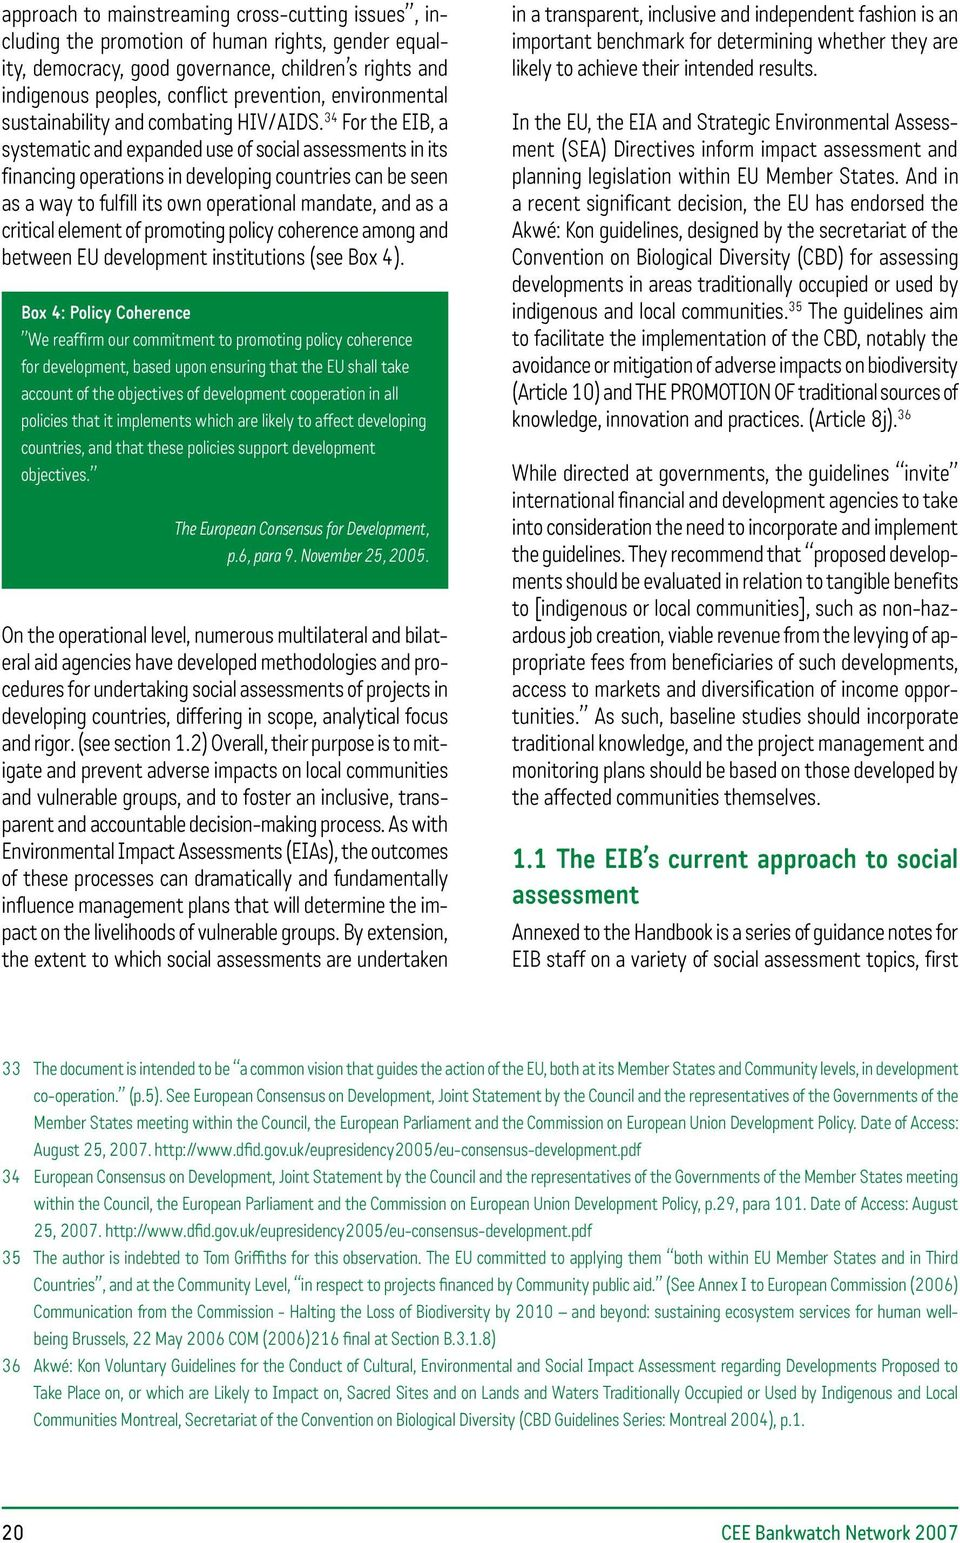 34 For the EIB, a systematic and expanded use of social assessments in its financing operations in developing countries can be seen as a way to fulfill its own operational mandate, and as a critical